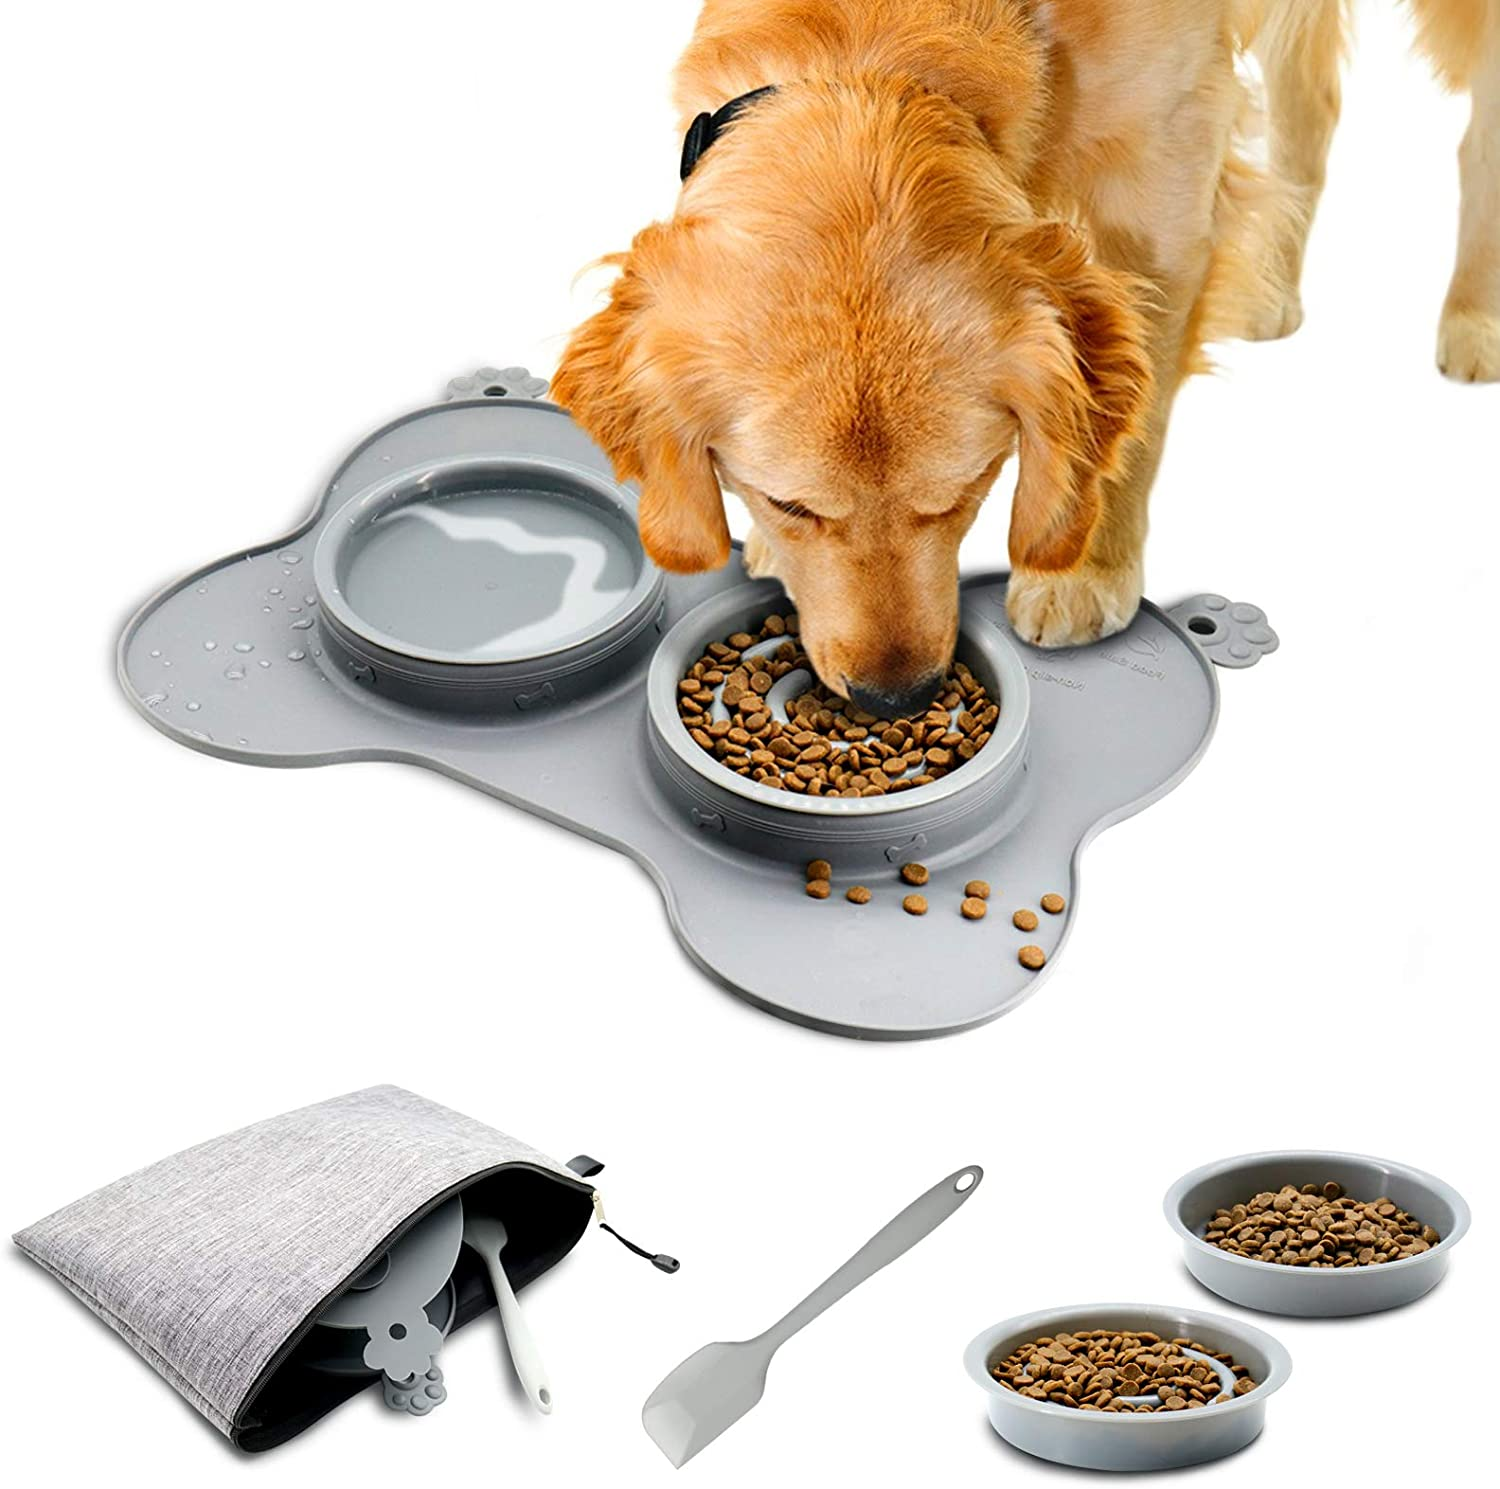 Three Capreolus Dog Slow Feeder Bowl for Mini Small Dogs Cats Puppy, Pet Dishes Anti-Choking Cat Food and Water Bowls with Non Skid Non Spill Silicone Mat and Spatula